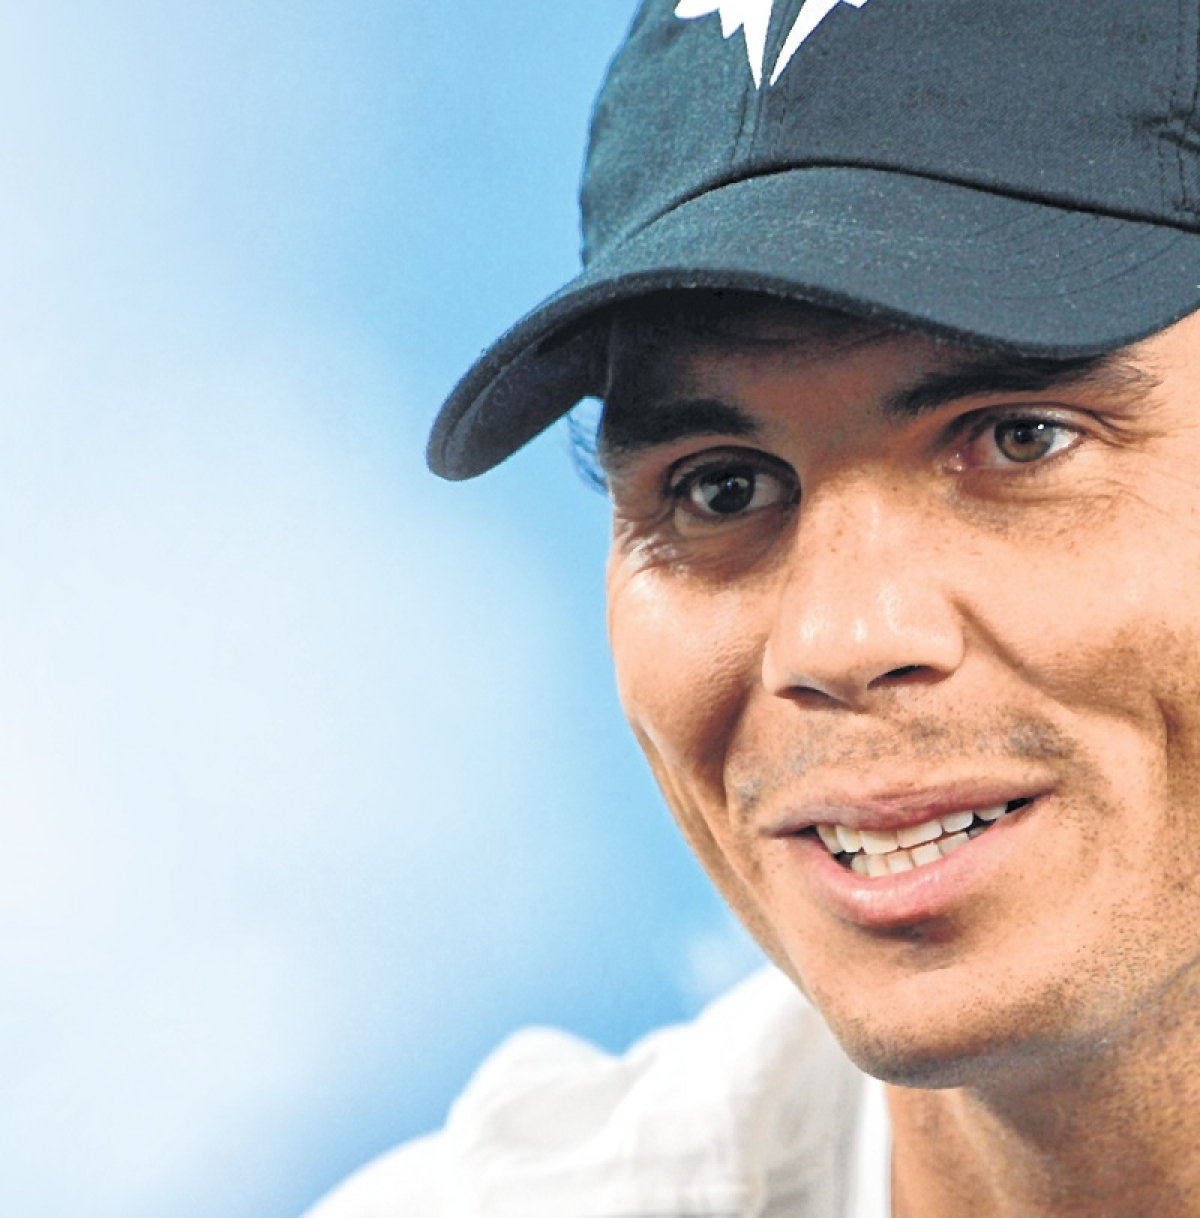 It's quality not quantity for Rafael Nadal